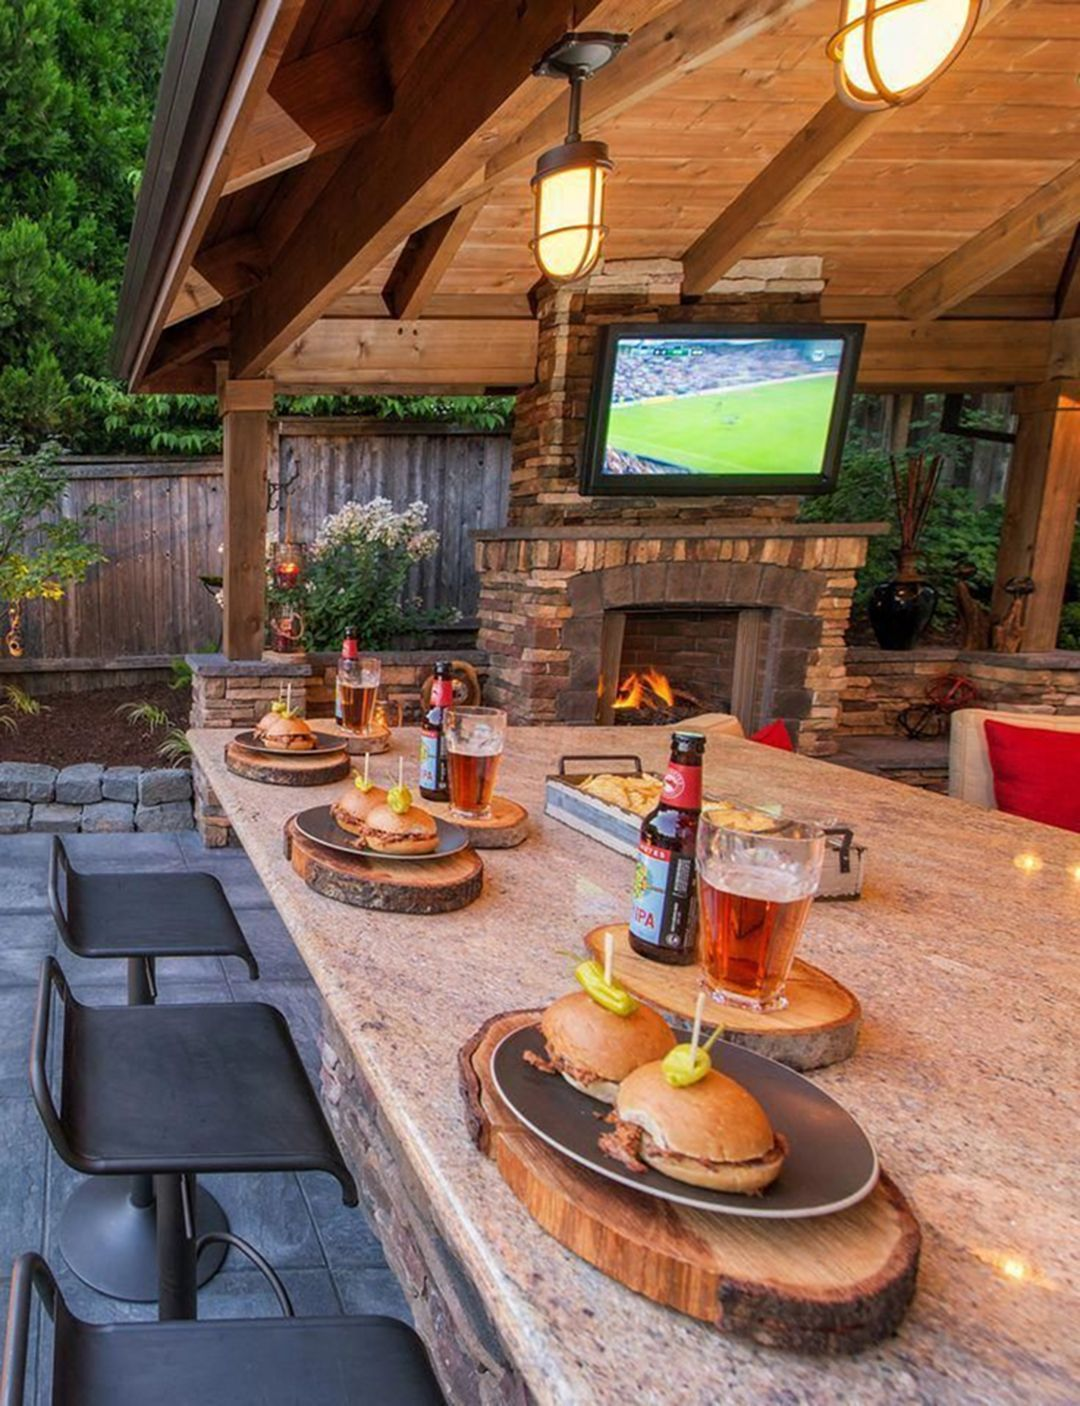 10 gorgeous diy outdoor kitchen designs on a budget outdoor kitchen patio diy outdoor on outdoor kitchen ideas on a budget id=94712